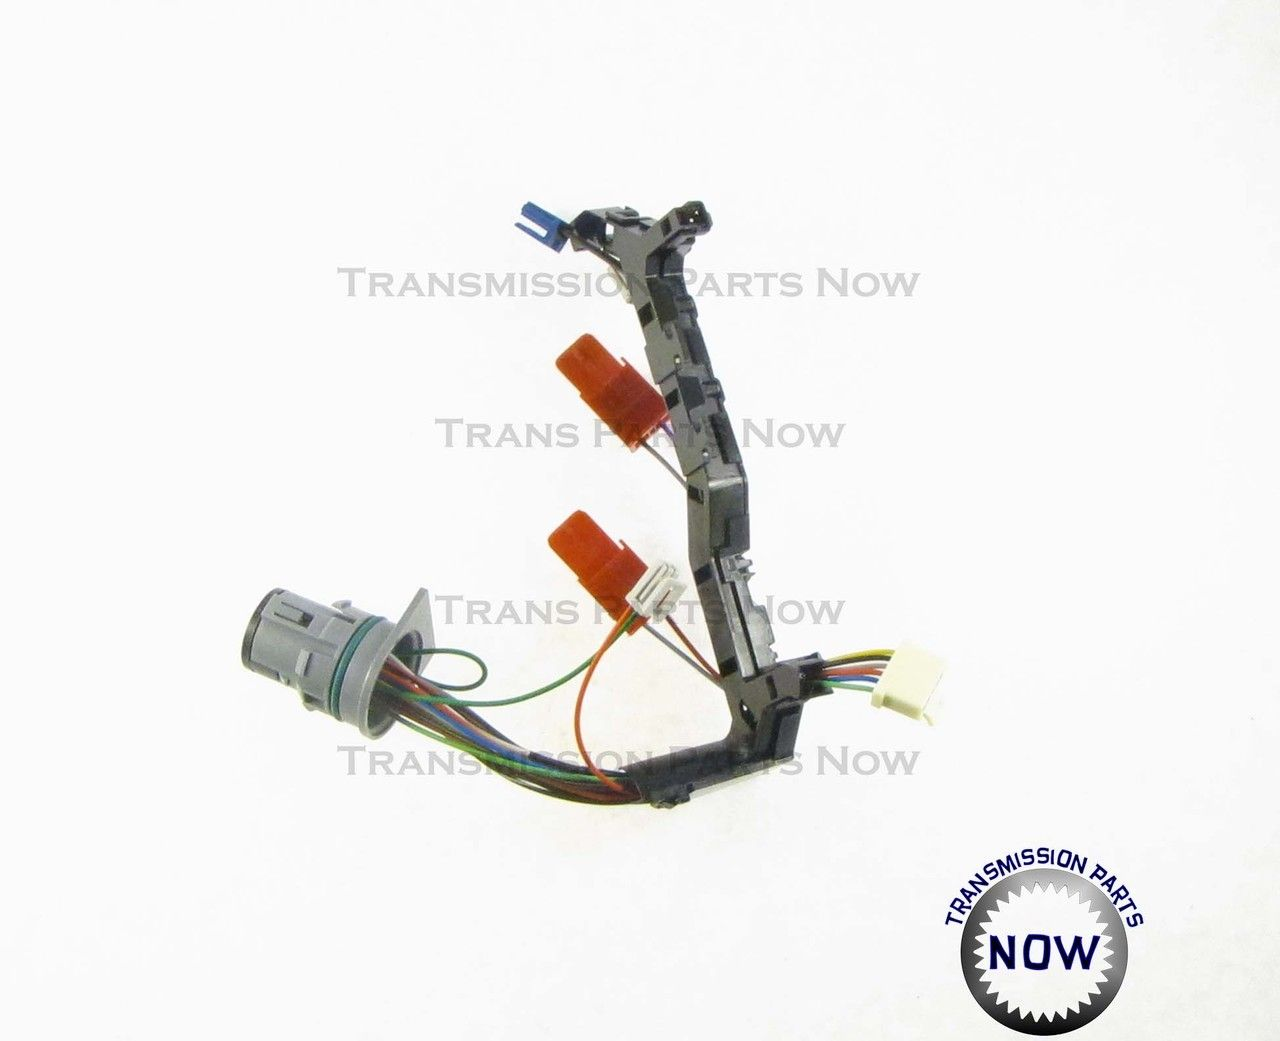 Allison transmission wire harness made in the USA Rostra